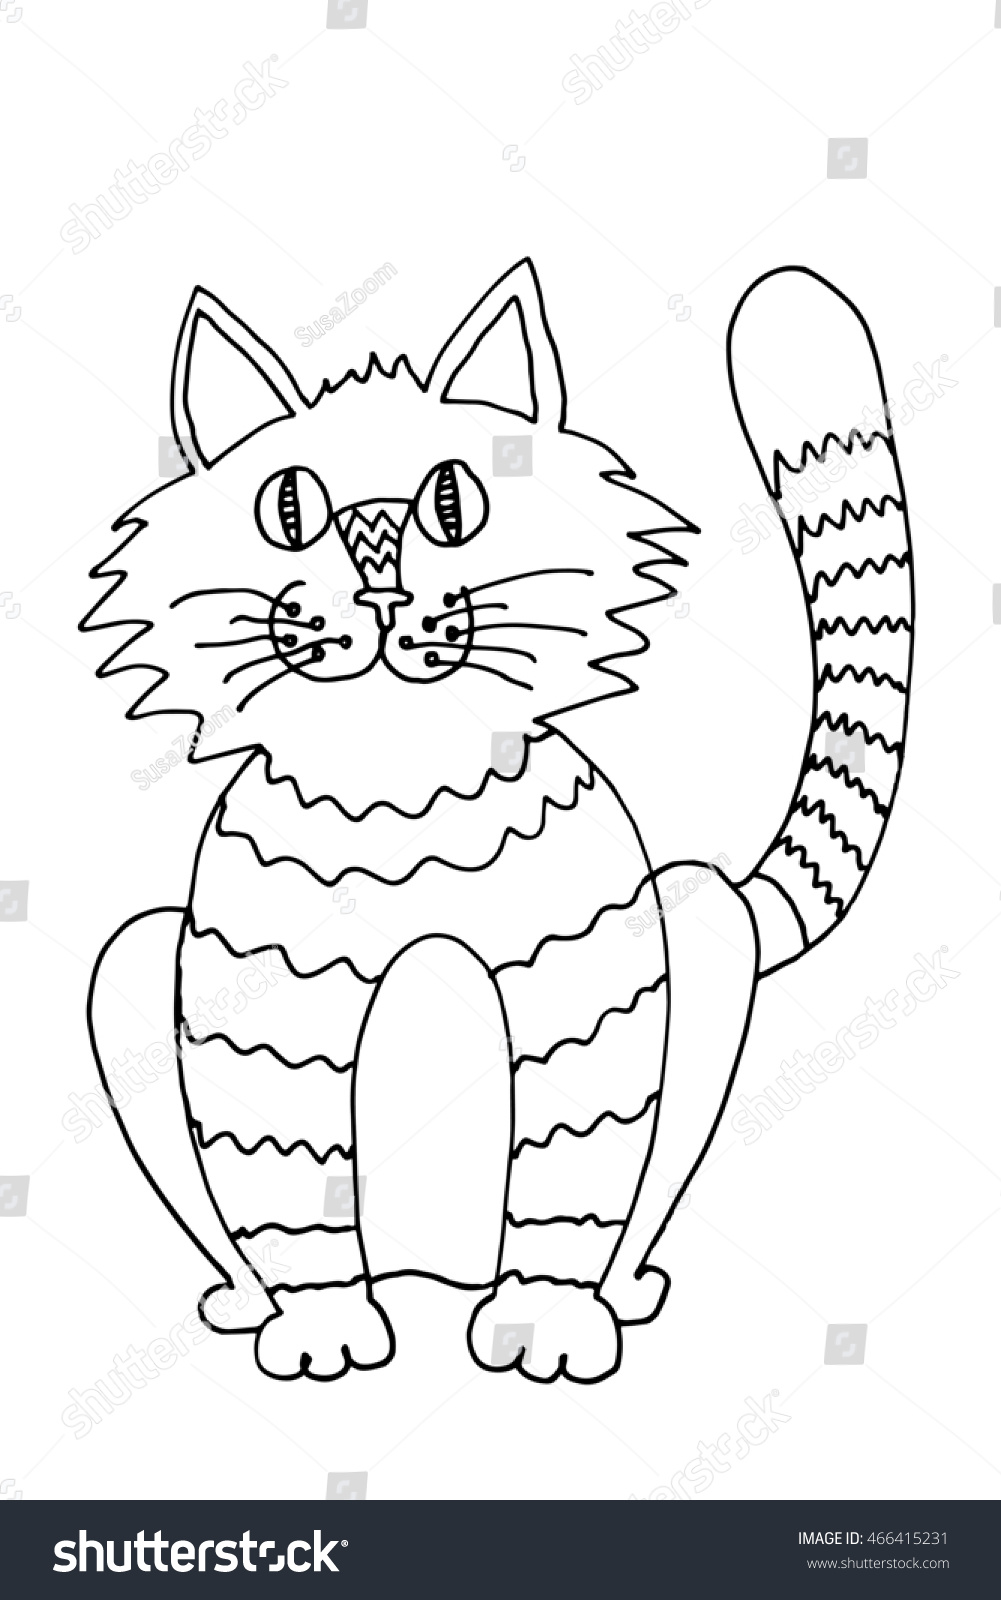 outline funny cat coloring picture black stock illustration